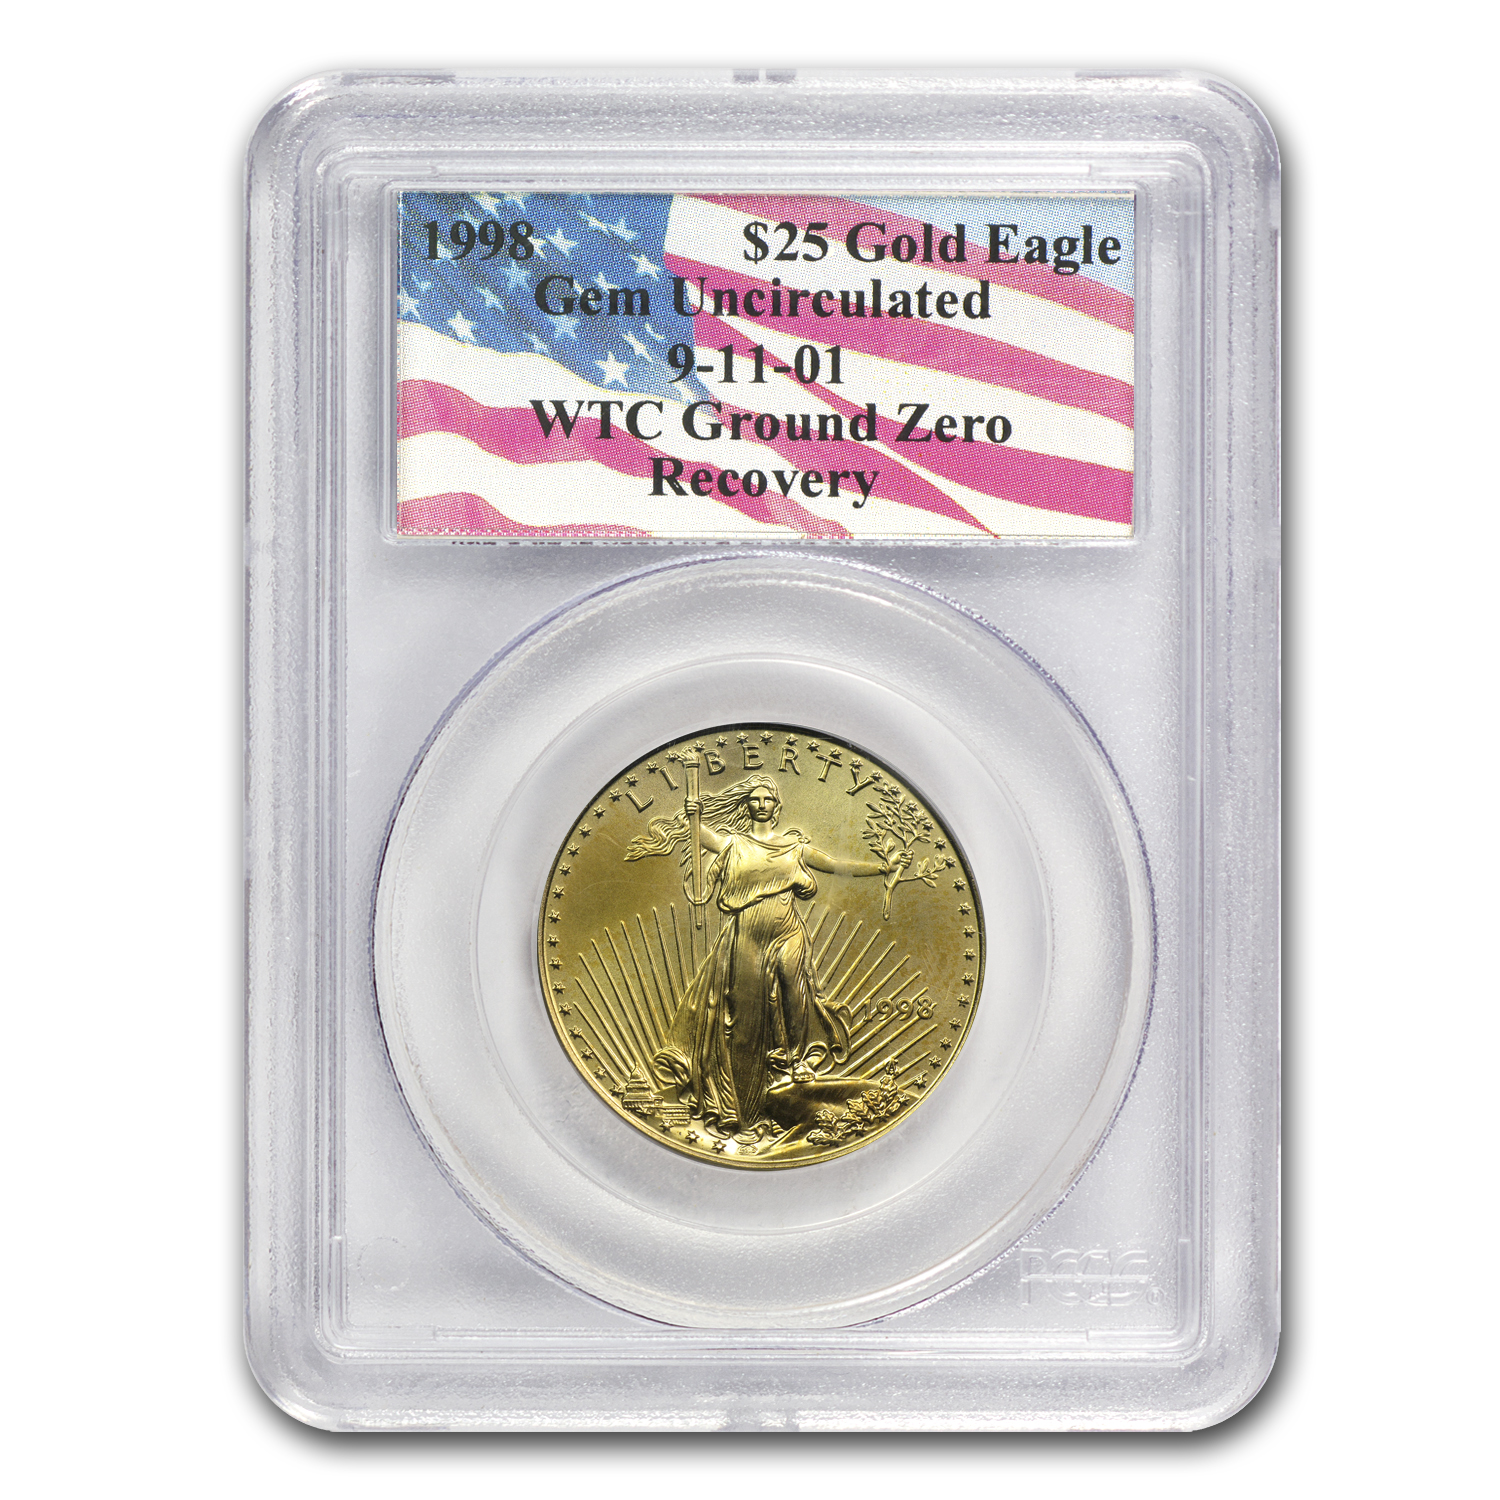 1998 1/2 oz Gold American Eagle PCGS Gem Unc (World Trade Center)